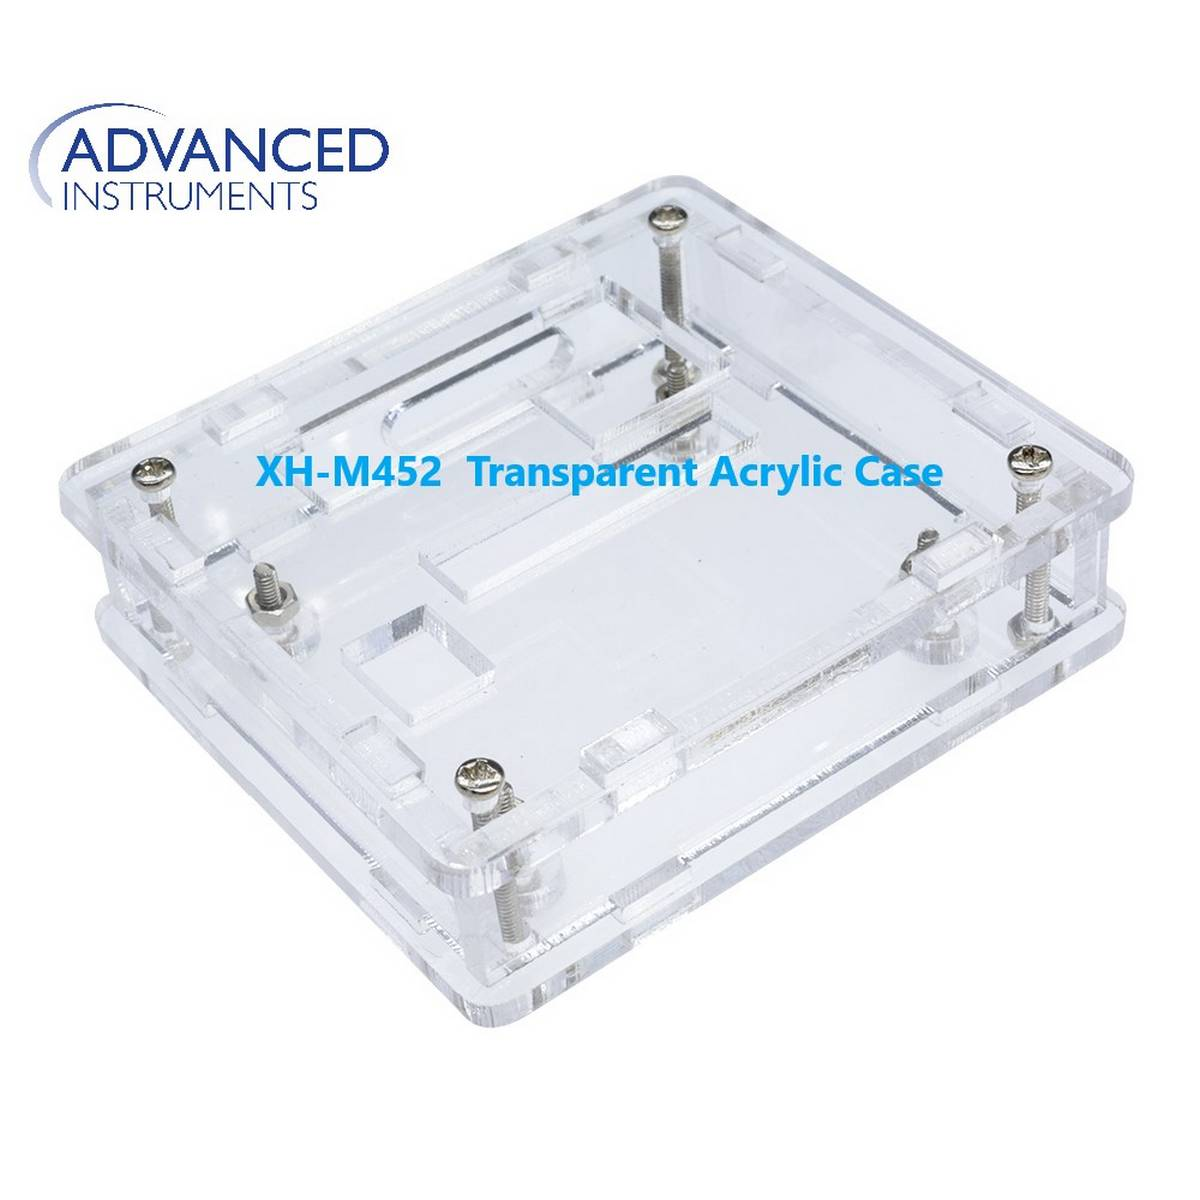 Casing For M452 Temperature & Humidity Controller XH-M452  Transparent Acrylic Case